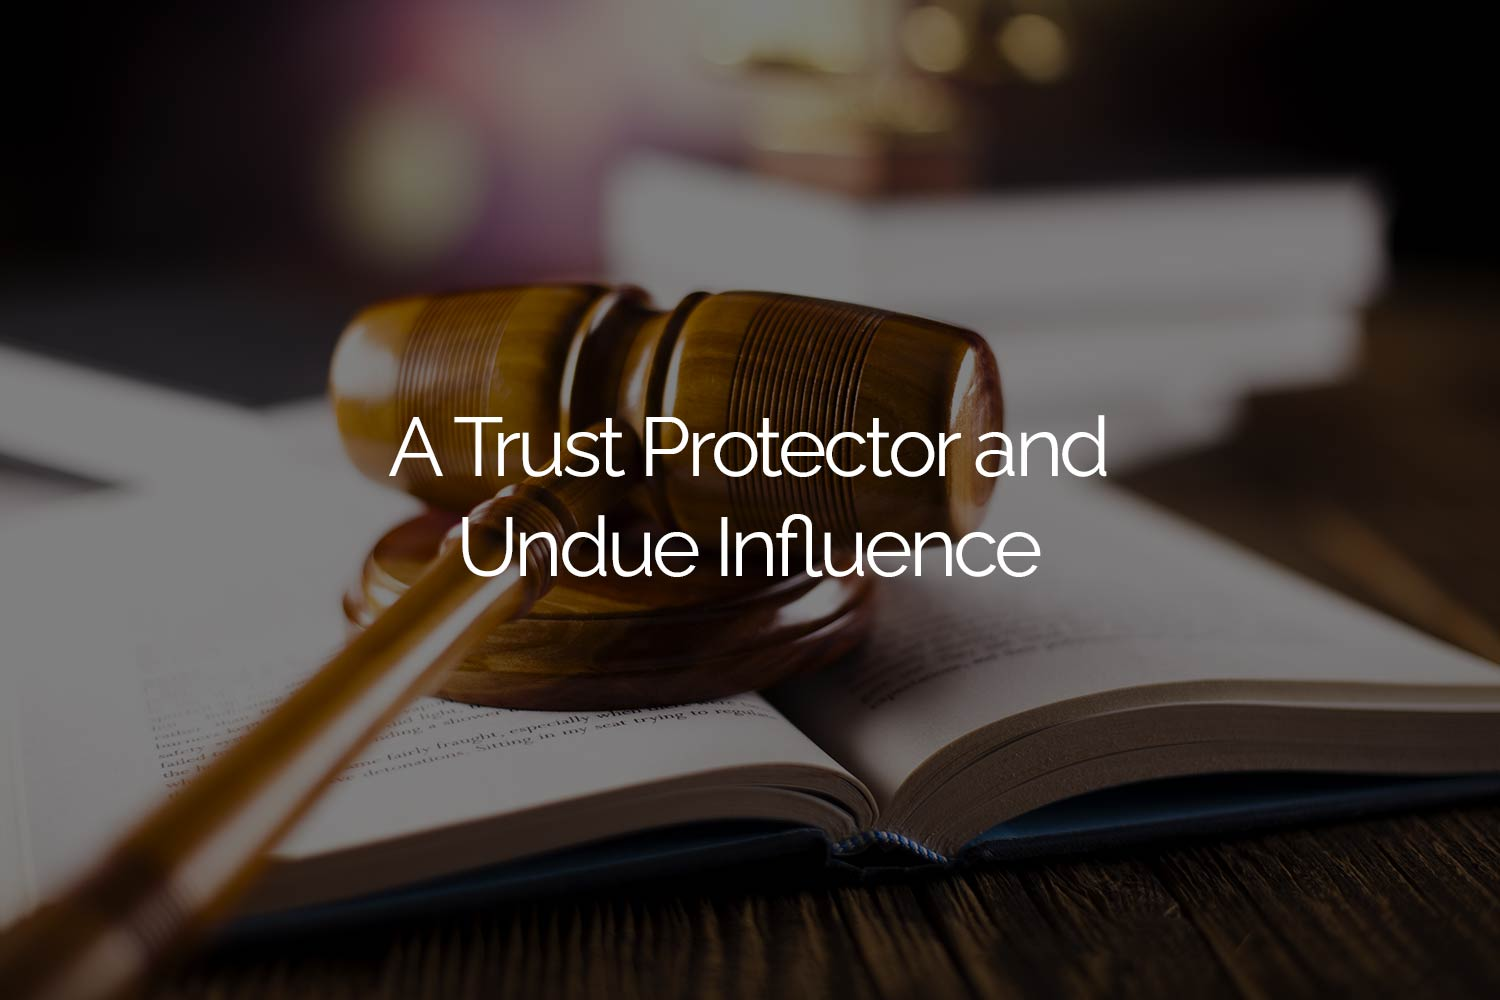 A Trust Protector and Undue Influence